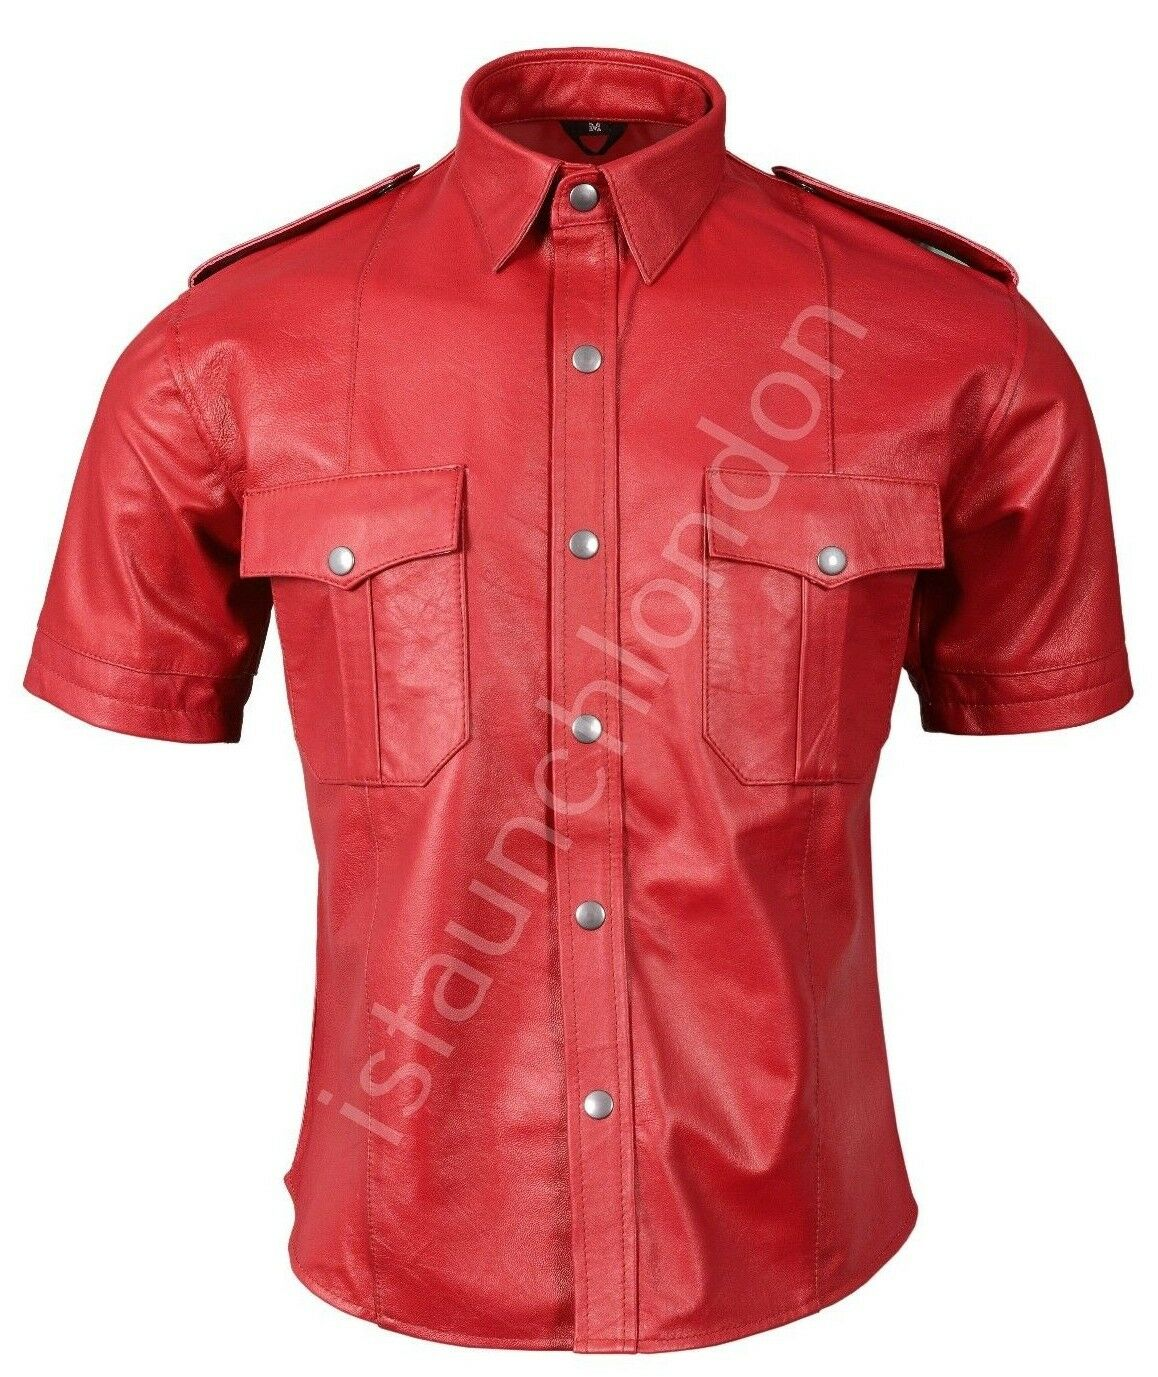 Mens HOT Genuine Real RED Sheep Leather Police Uniform Shirt blueF Gay All Sizes